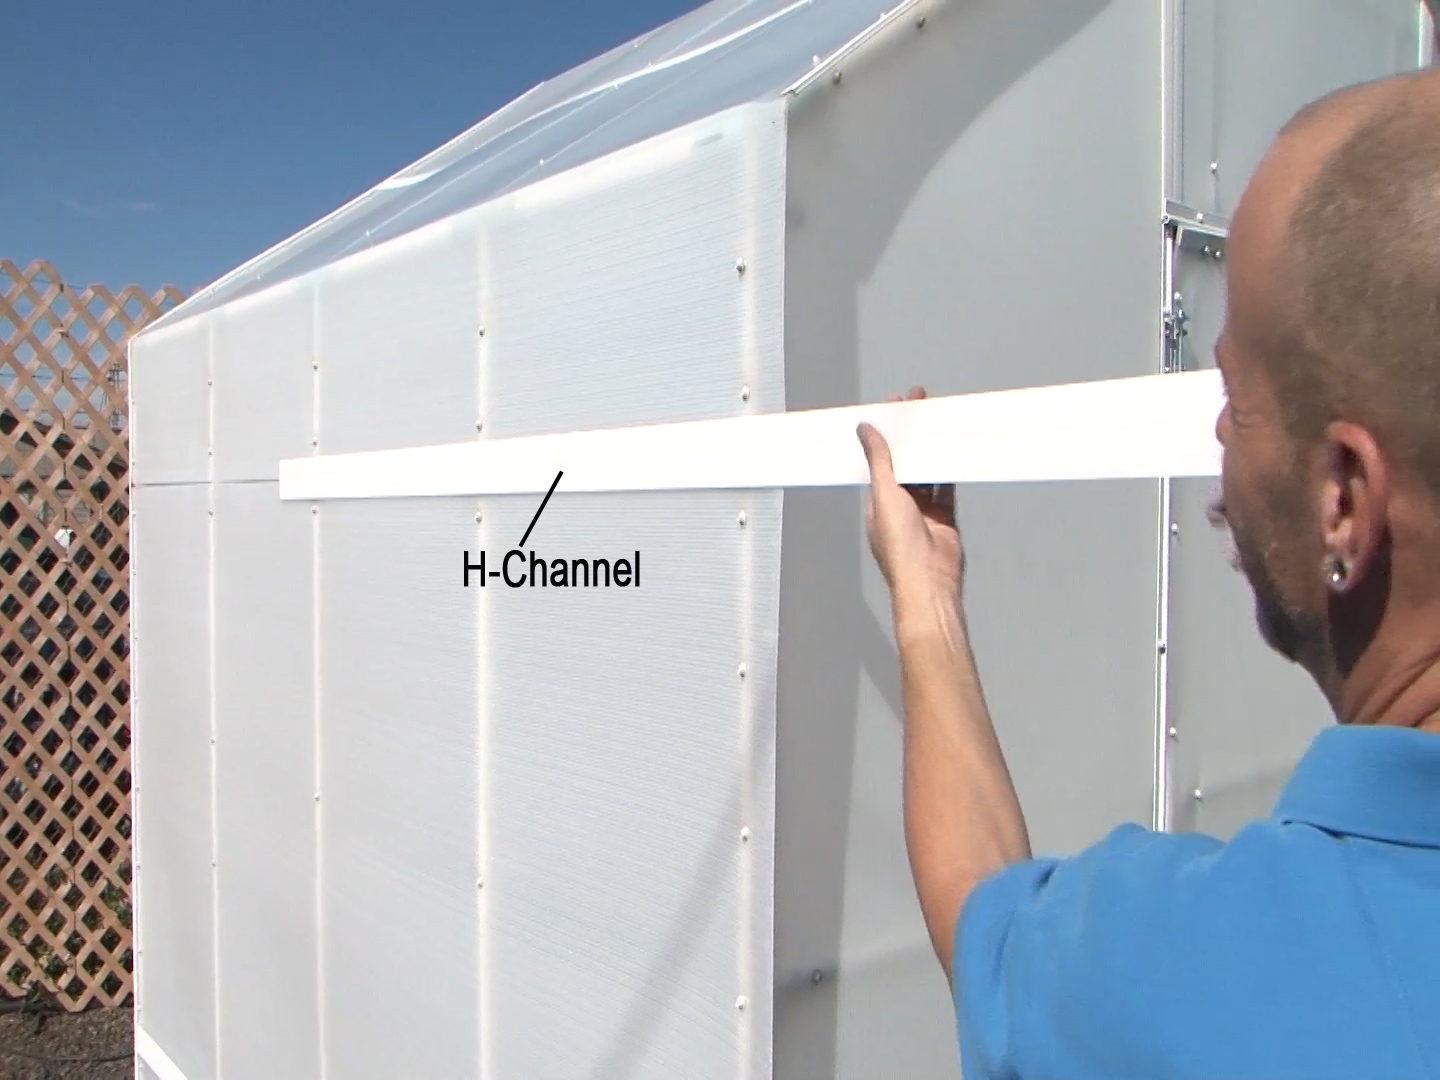 H-Channel joins Solexx Panels together